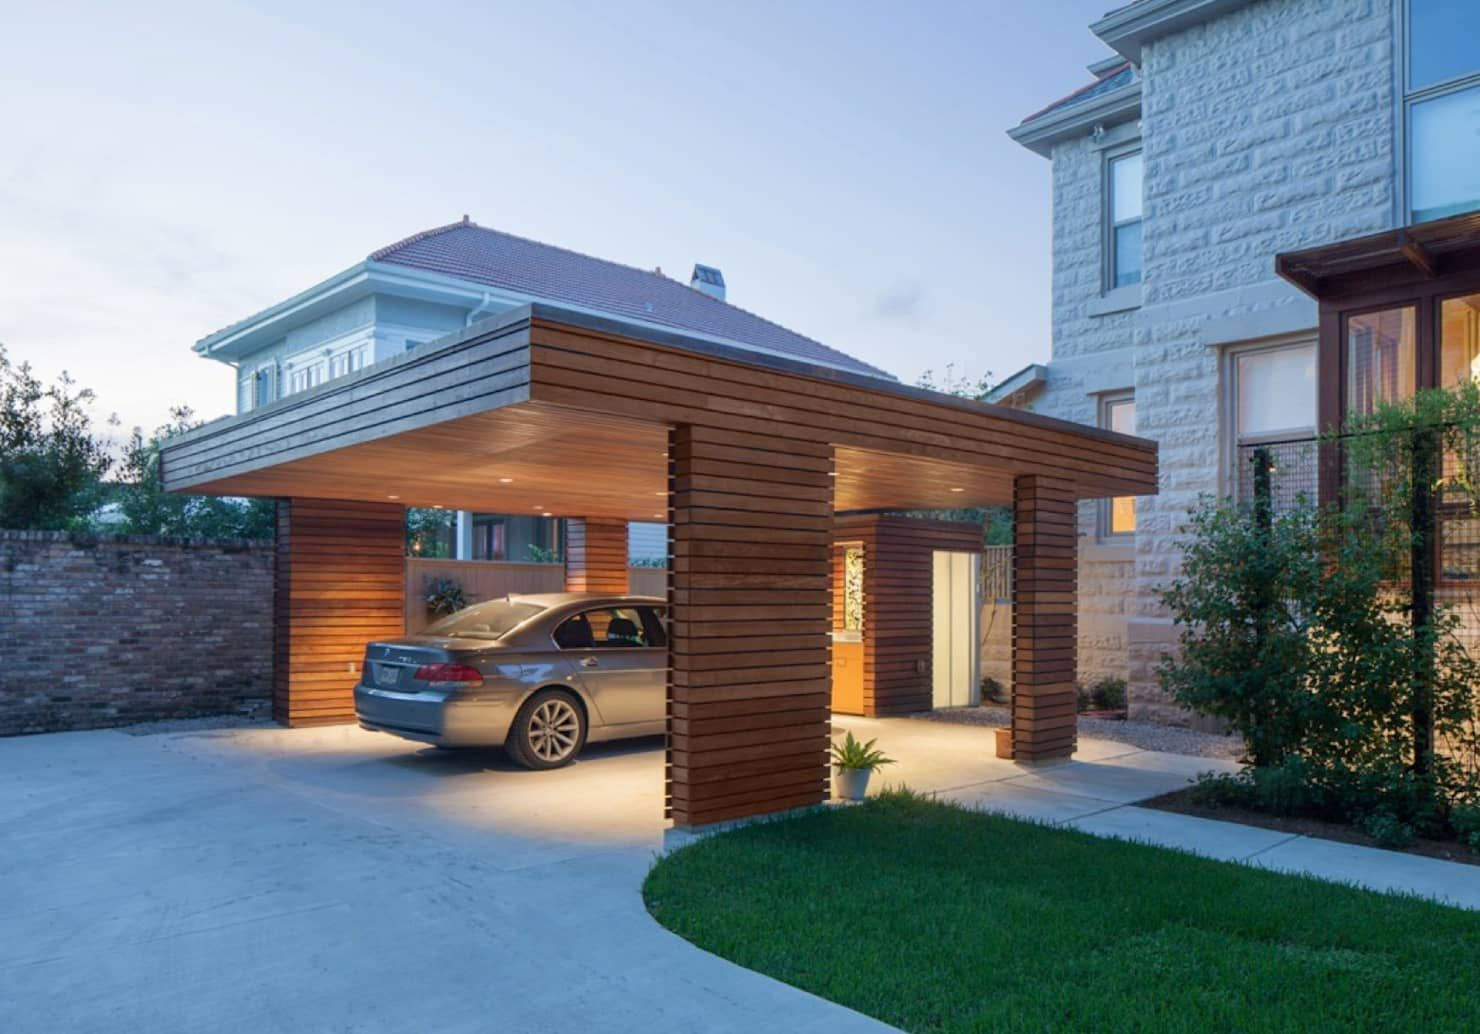 City Park Carport New Orleans Modern Garage And Shed By Studiowta